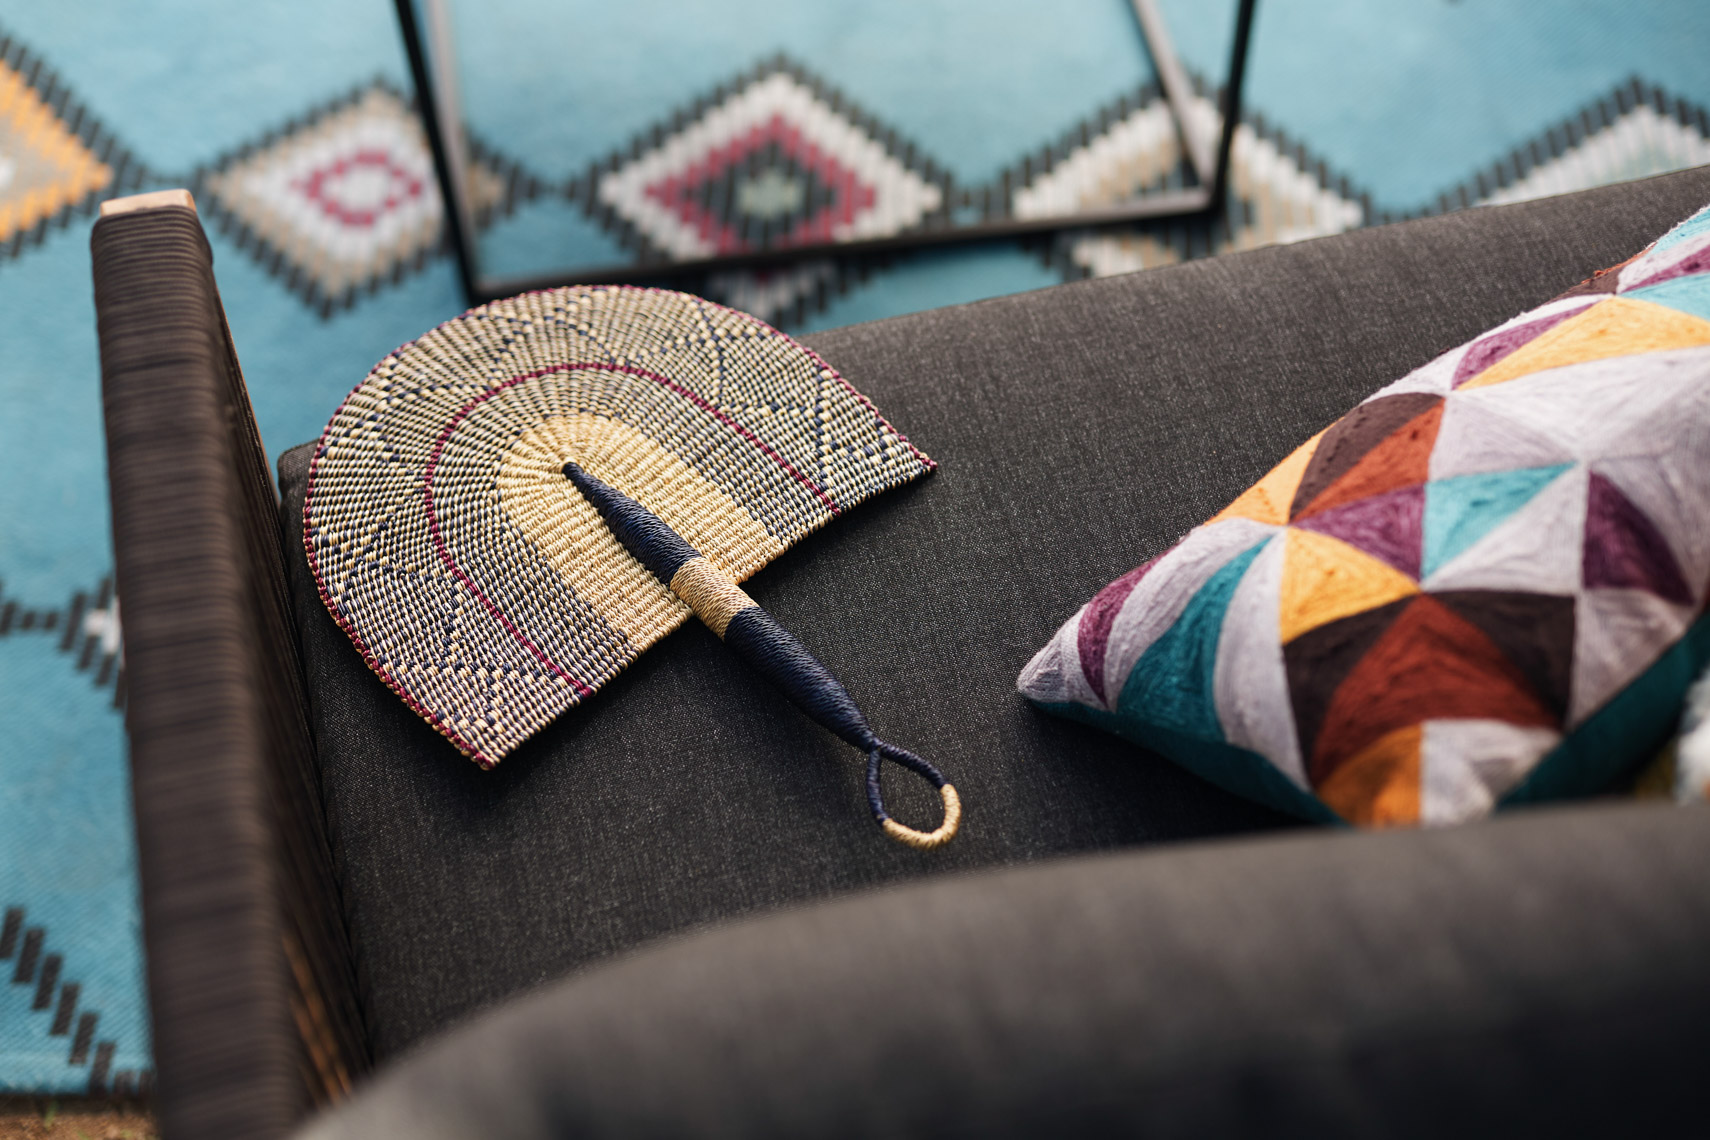 Detail of fan on dark couch with colorful pillow outside